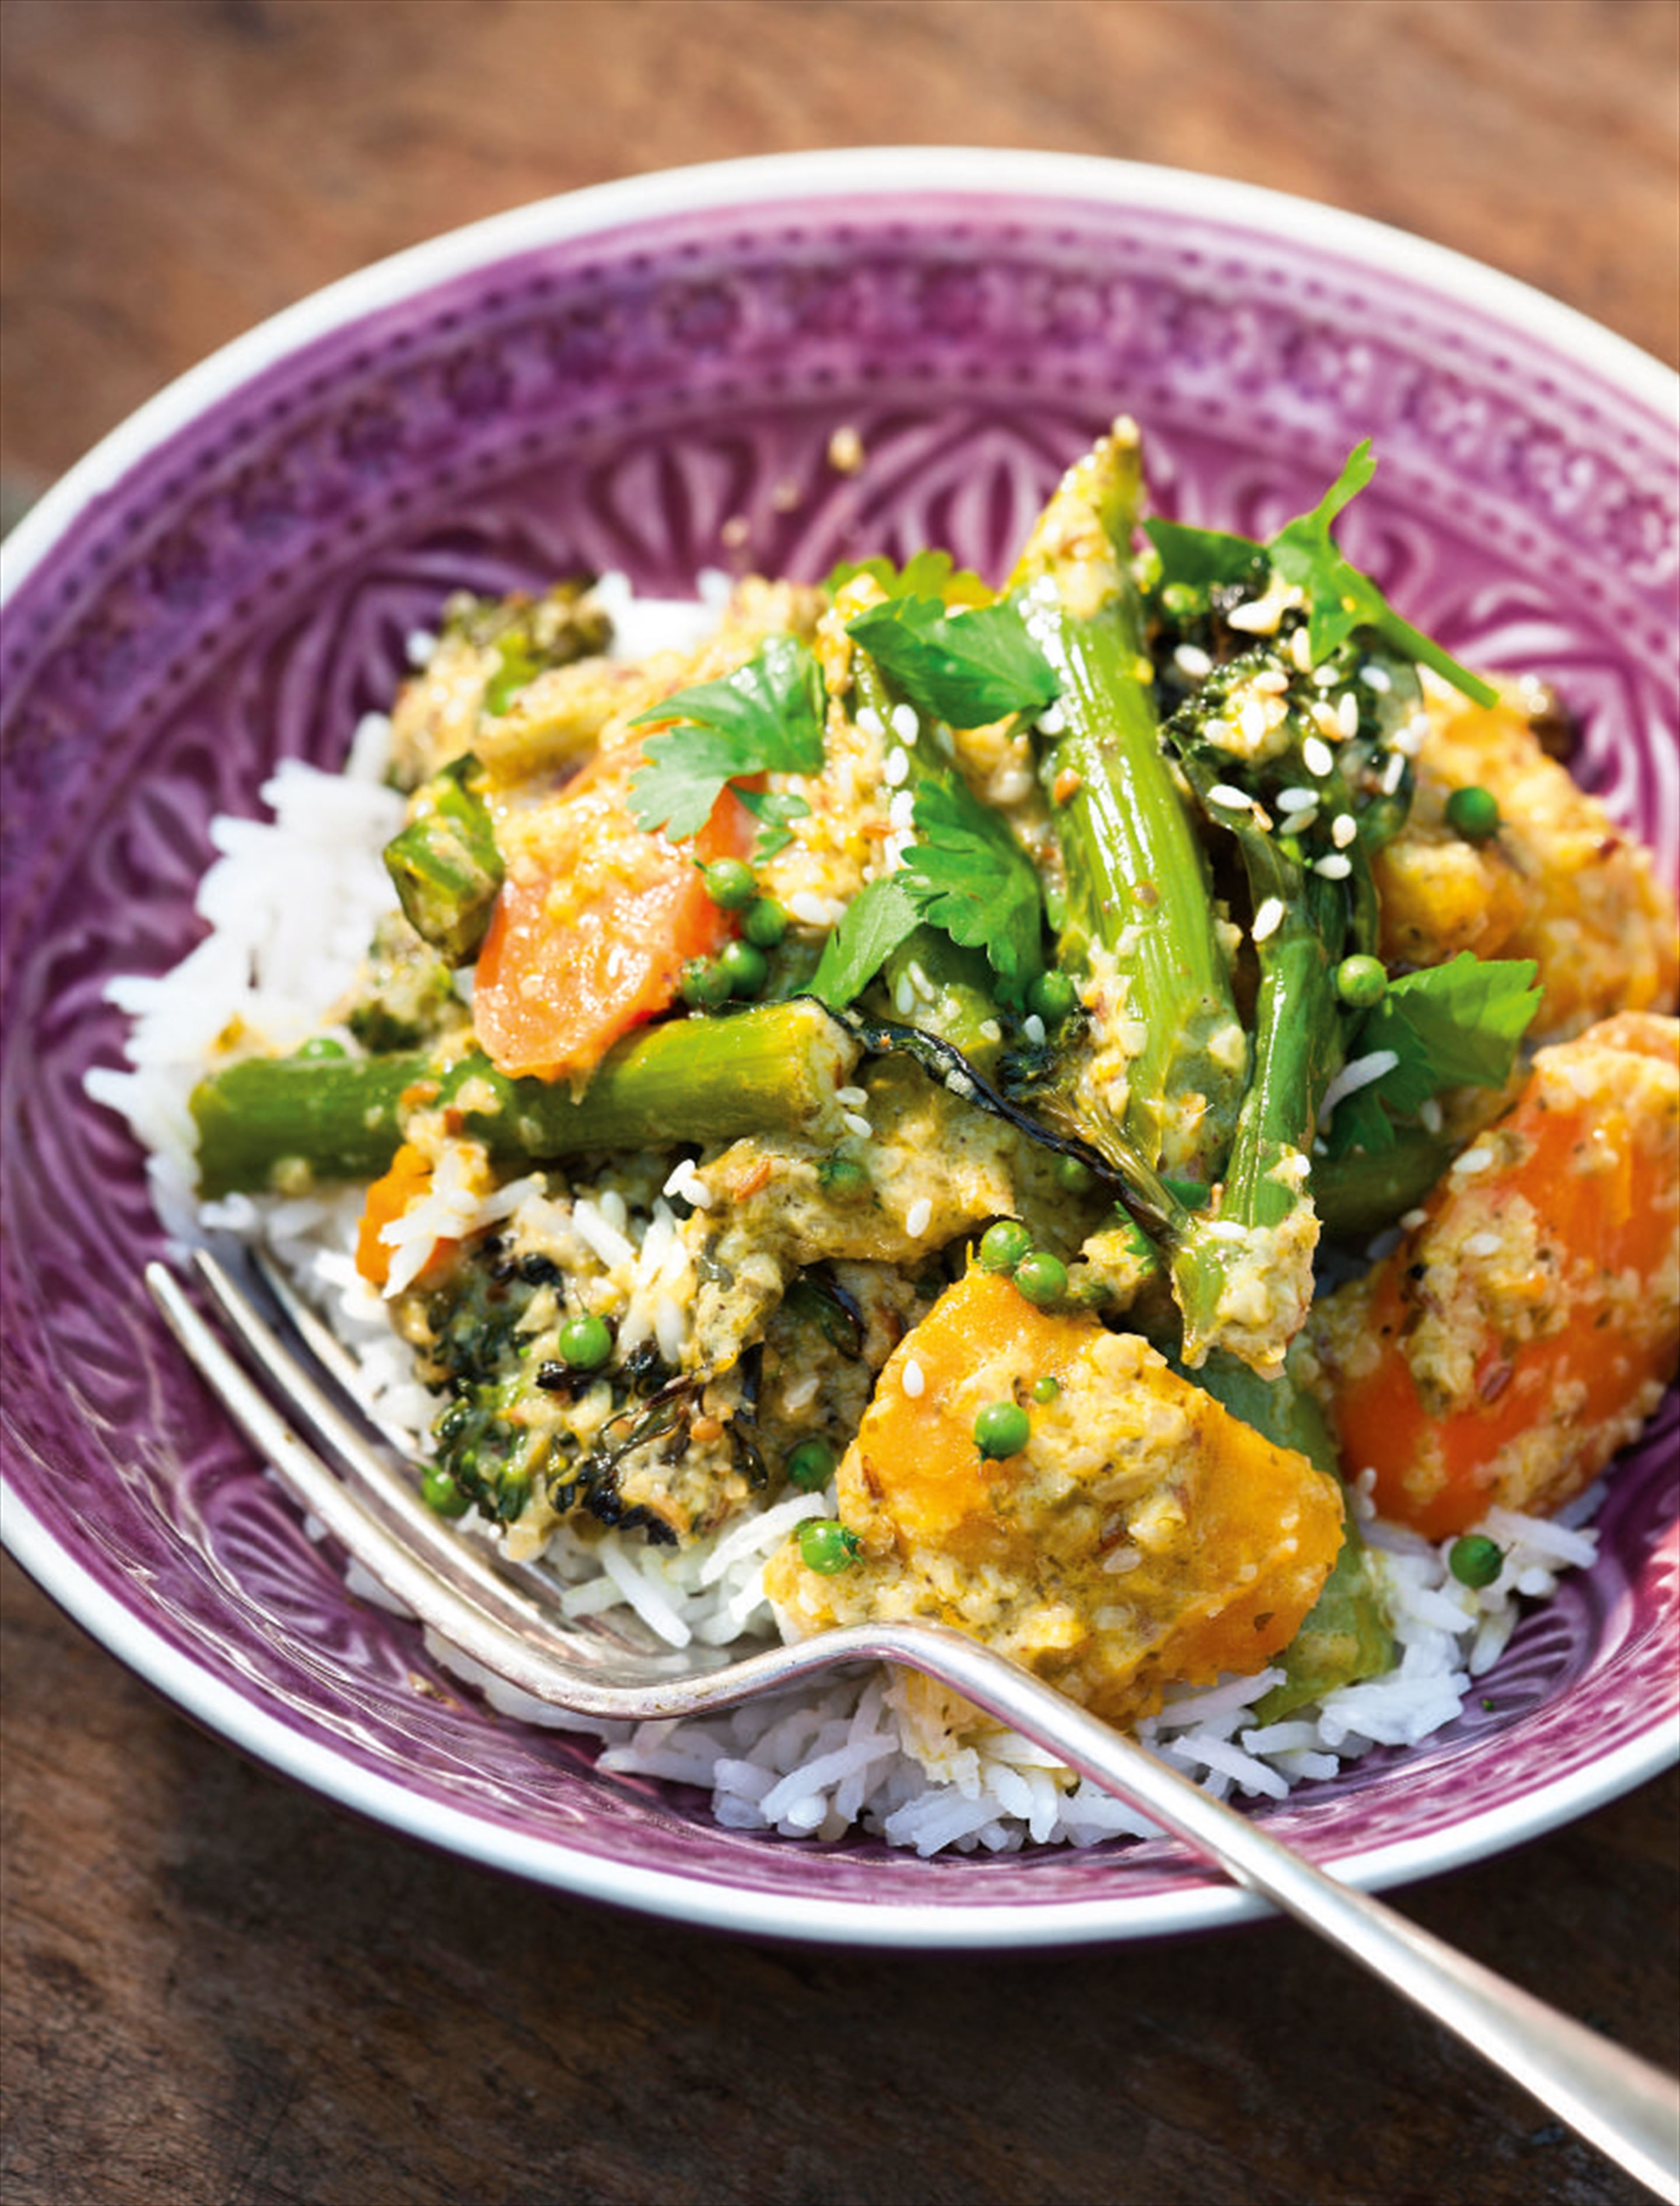 Green Thai Autumn fish and vegetable curry